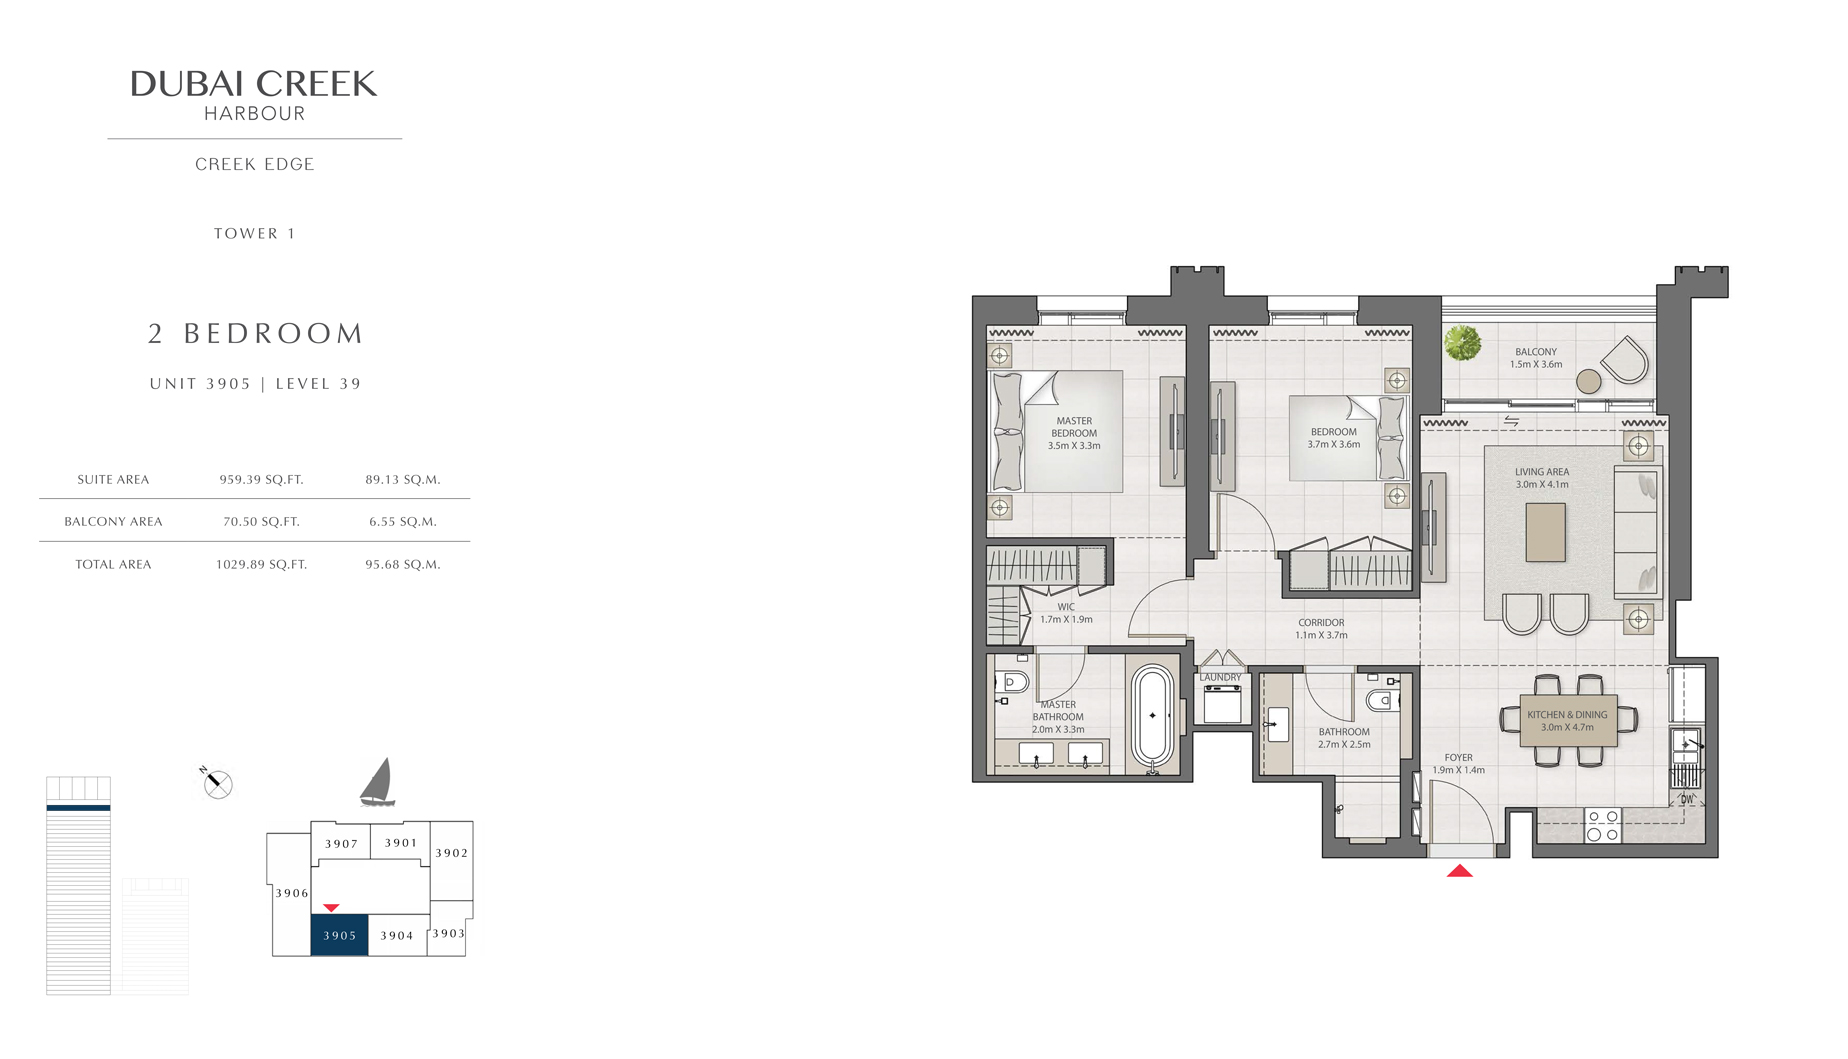 2 Bedroom Tower 1 Unit 3905 Level 39 Size 1029 sq.ft